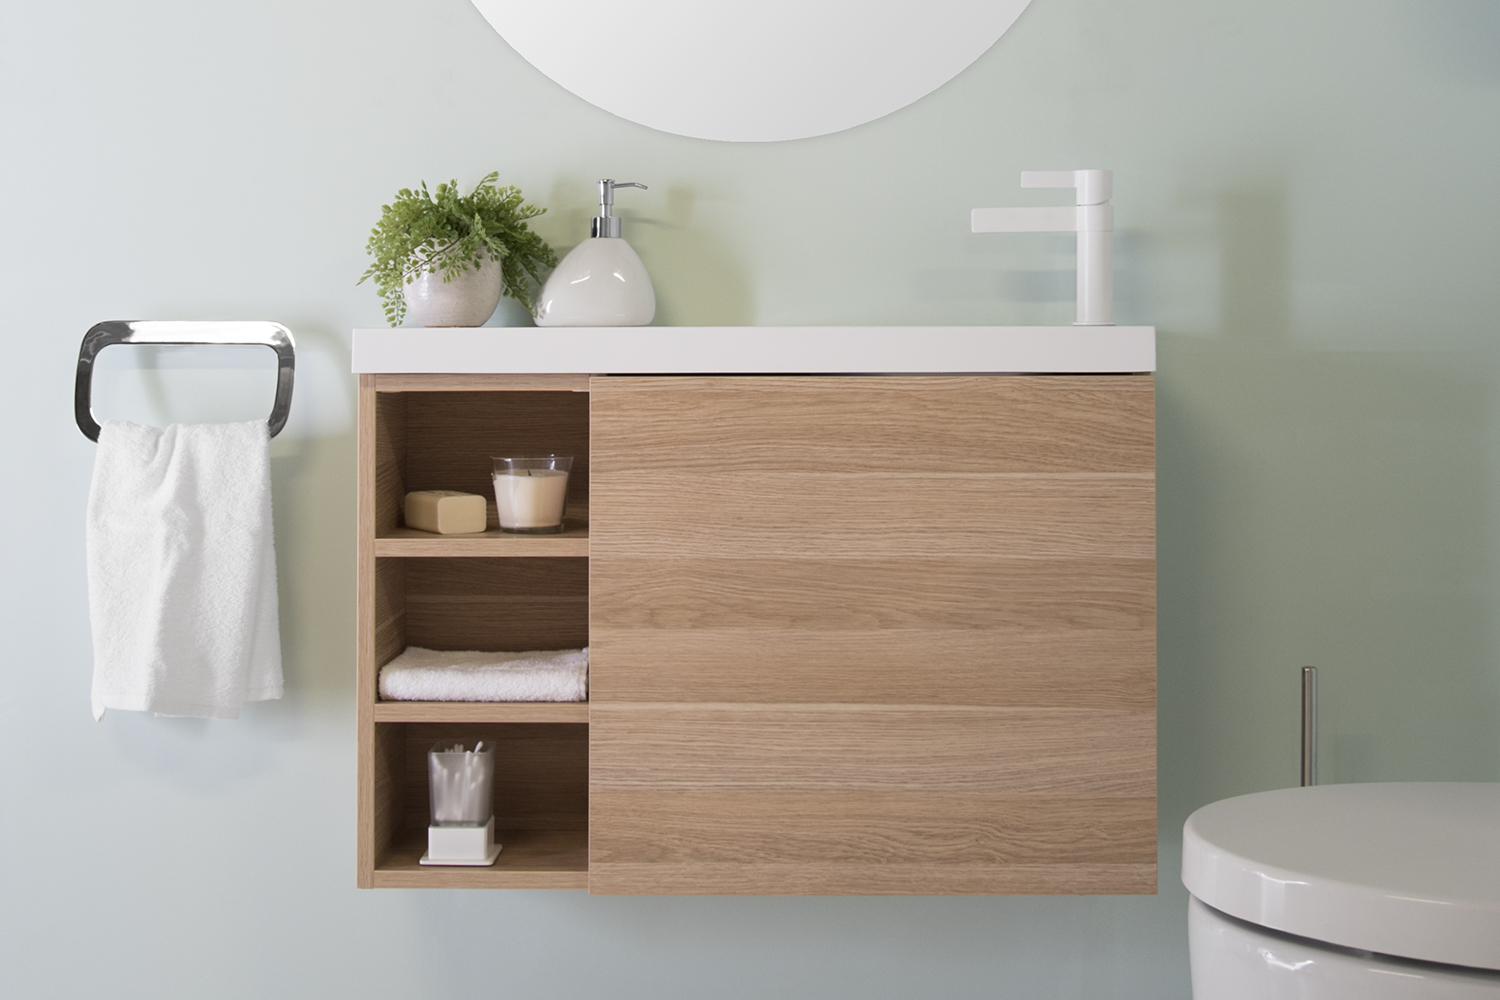 10 tips for making the most of your small bathroom